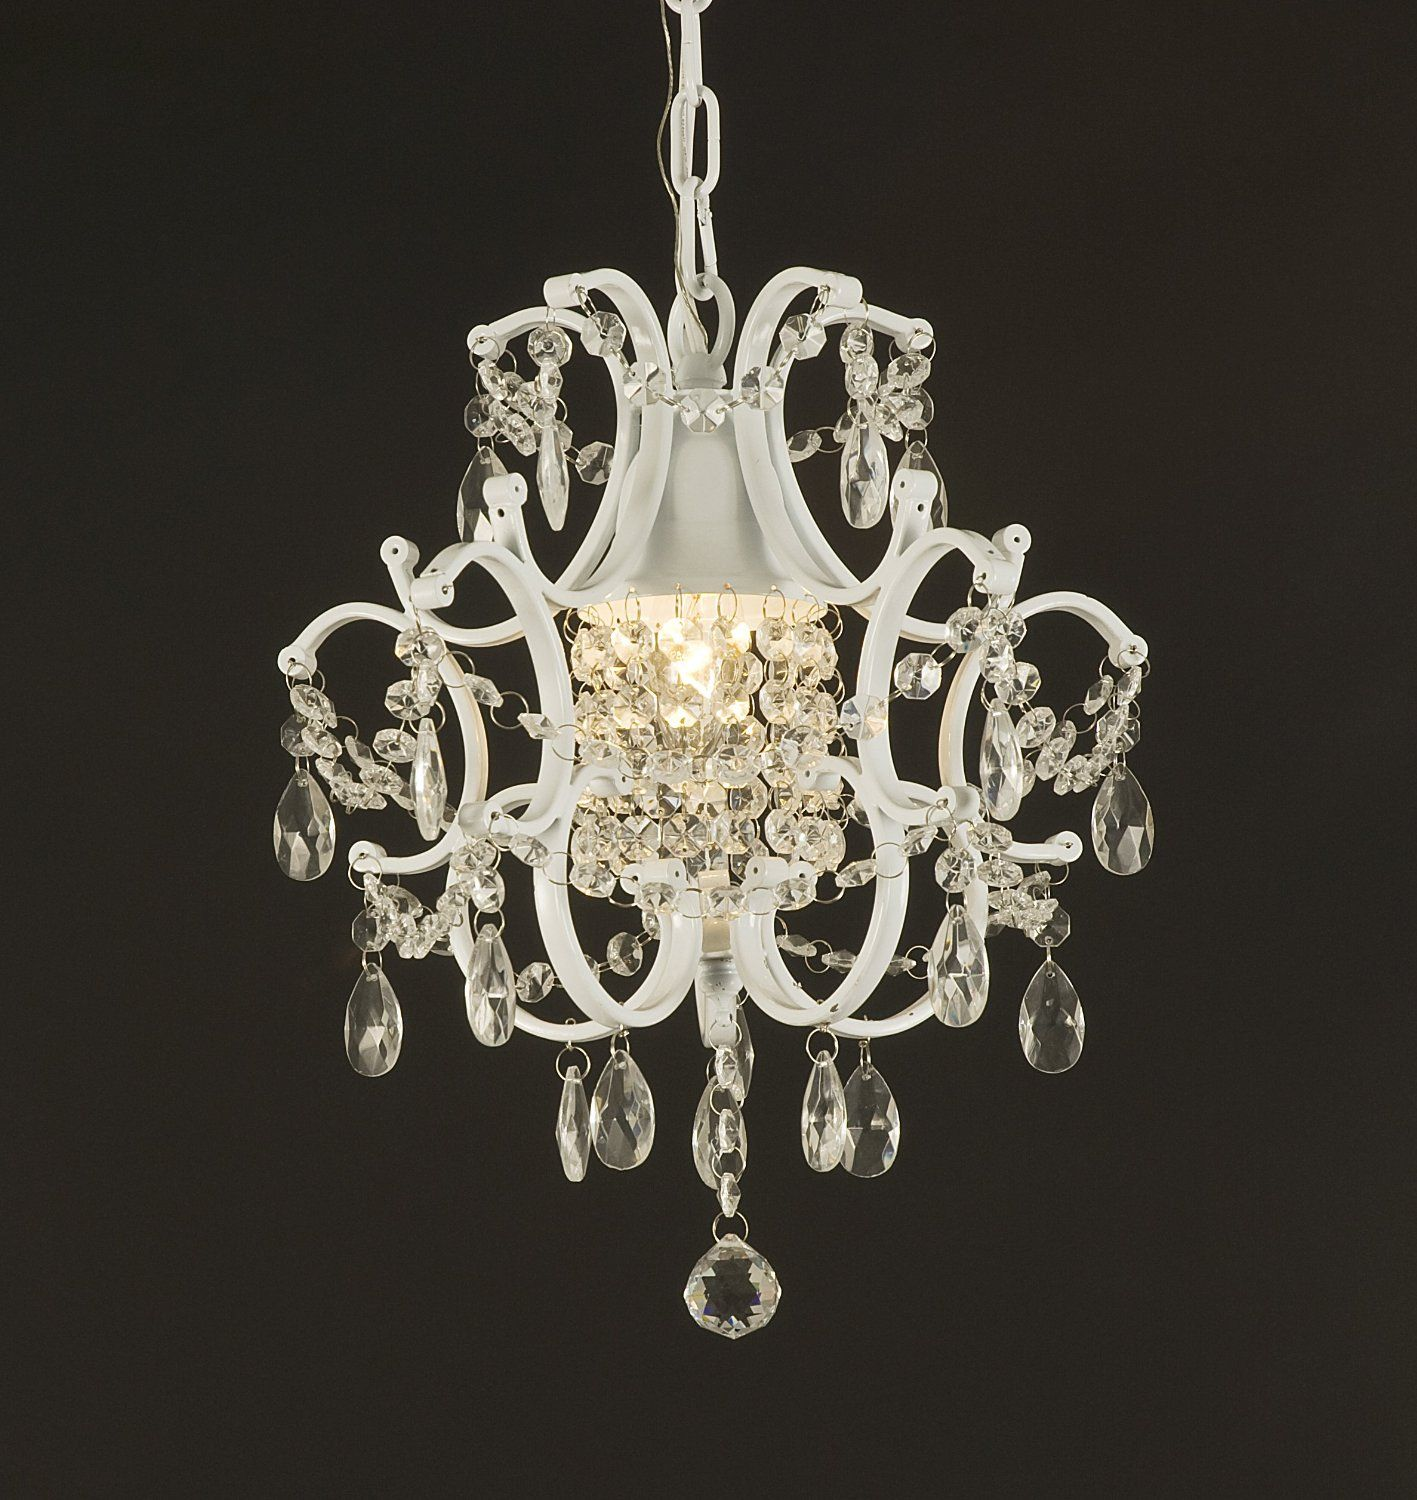 Amazon Com Wrought Iron Crystal Chandelier Lighting